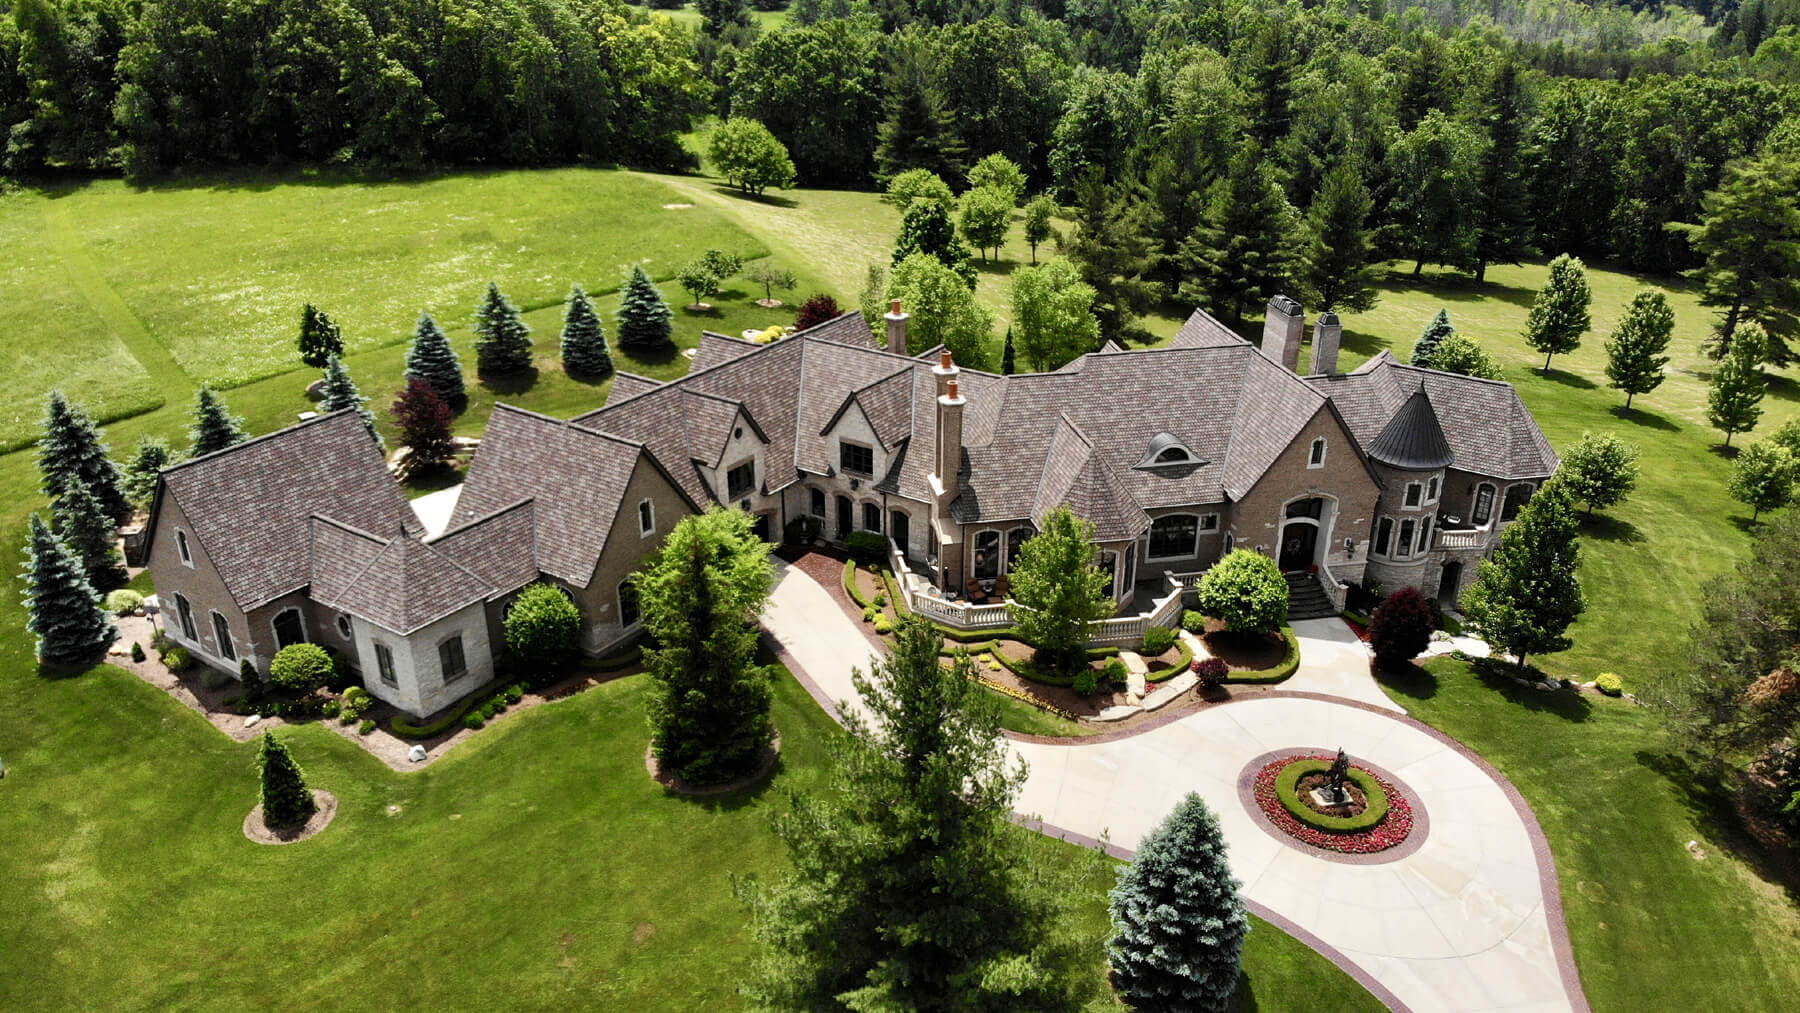 6700 Bordman - Bruce Township, Michigan - $3,999,999 USD